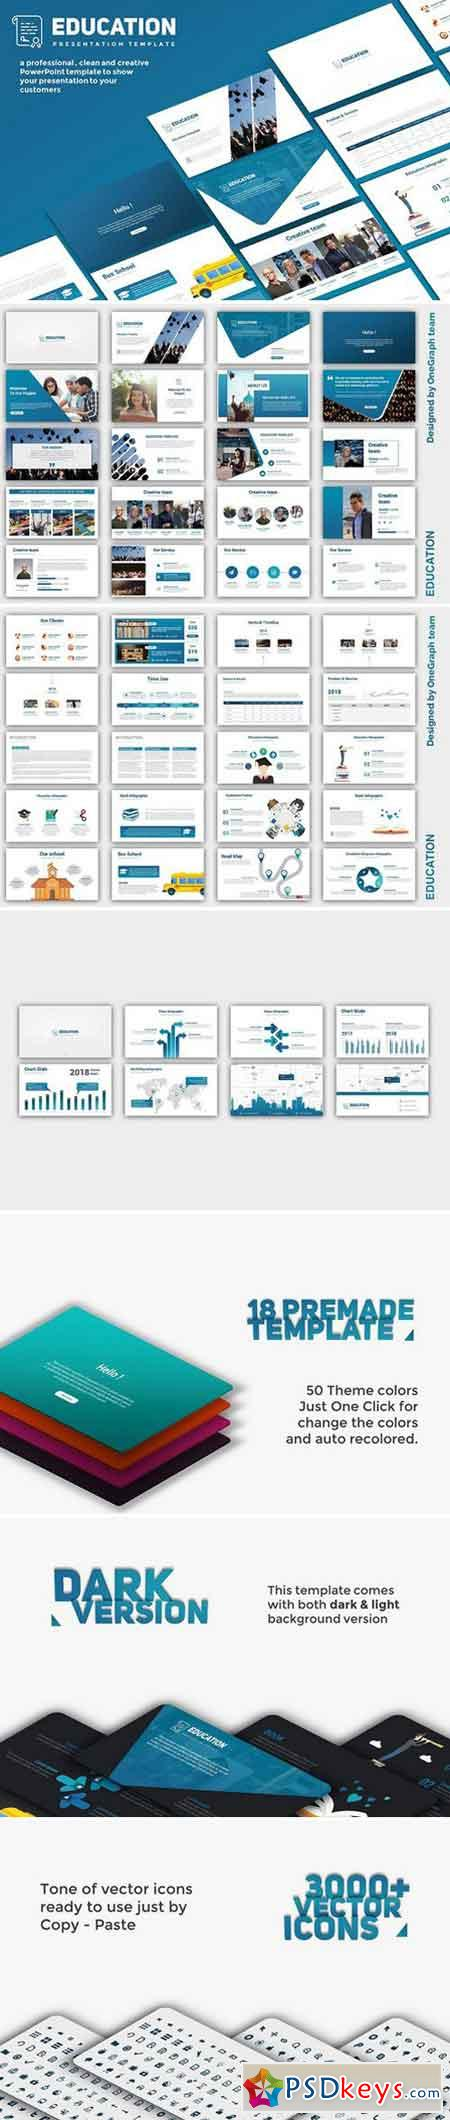 Education PowerPoint Template 2154651